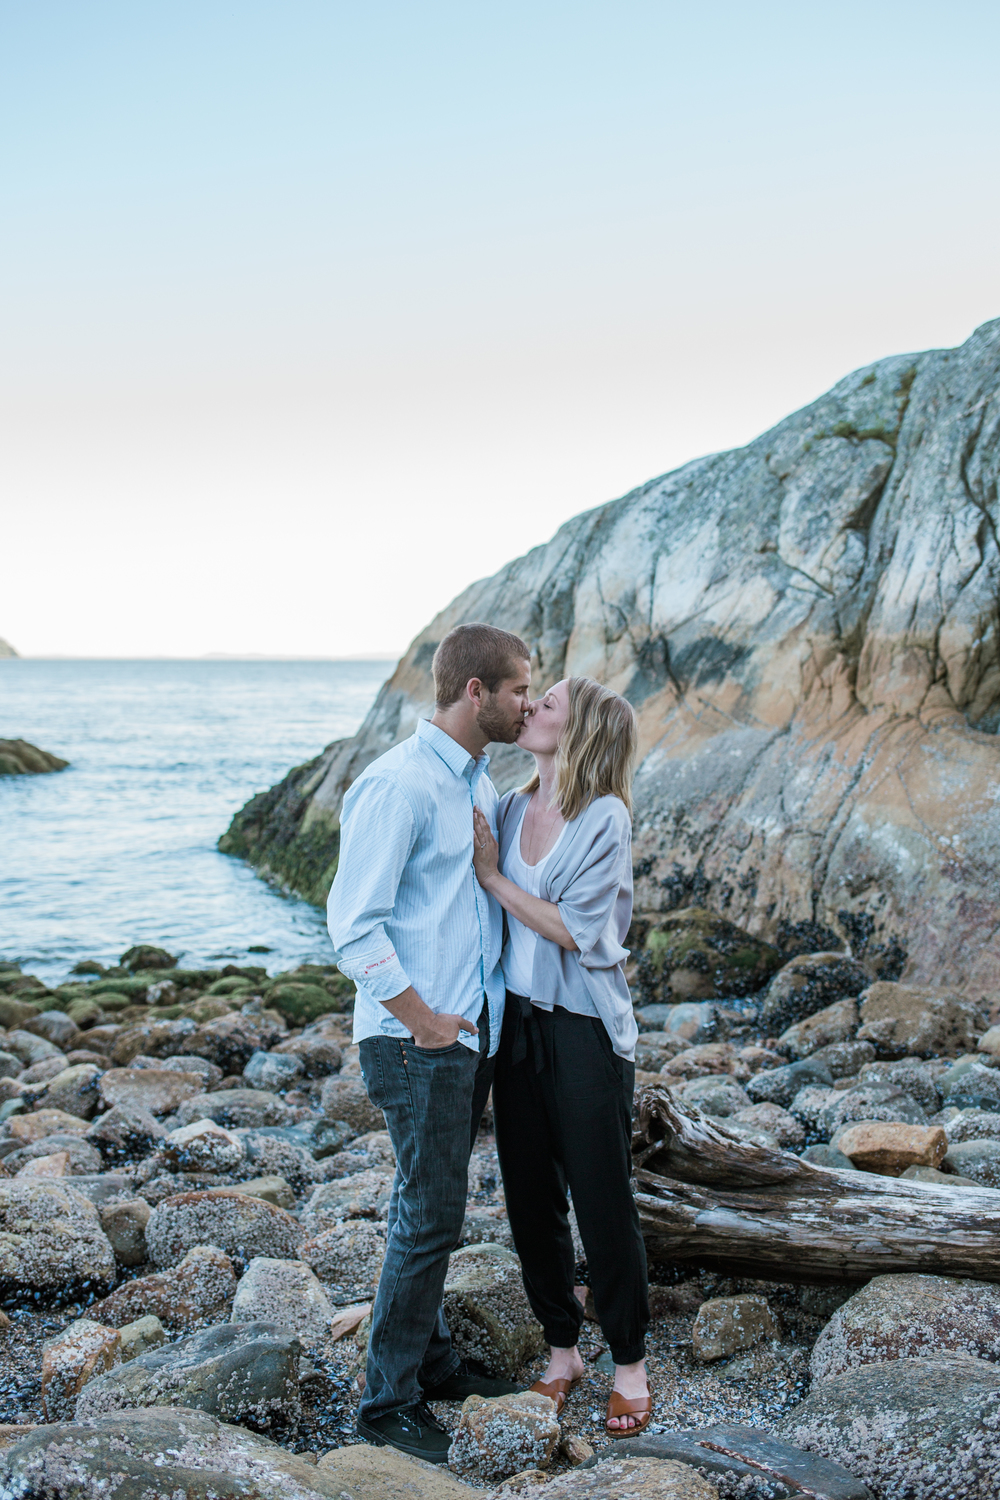 LightHousePark-Engagement-M&J-MintPhotography-26.jpg